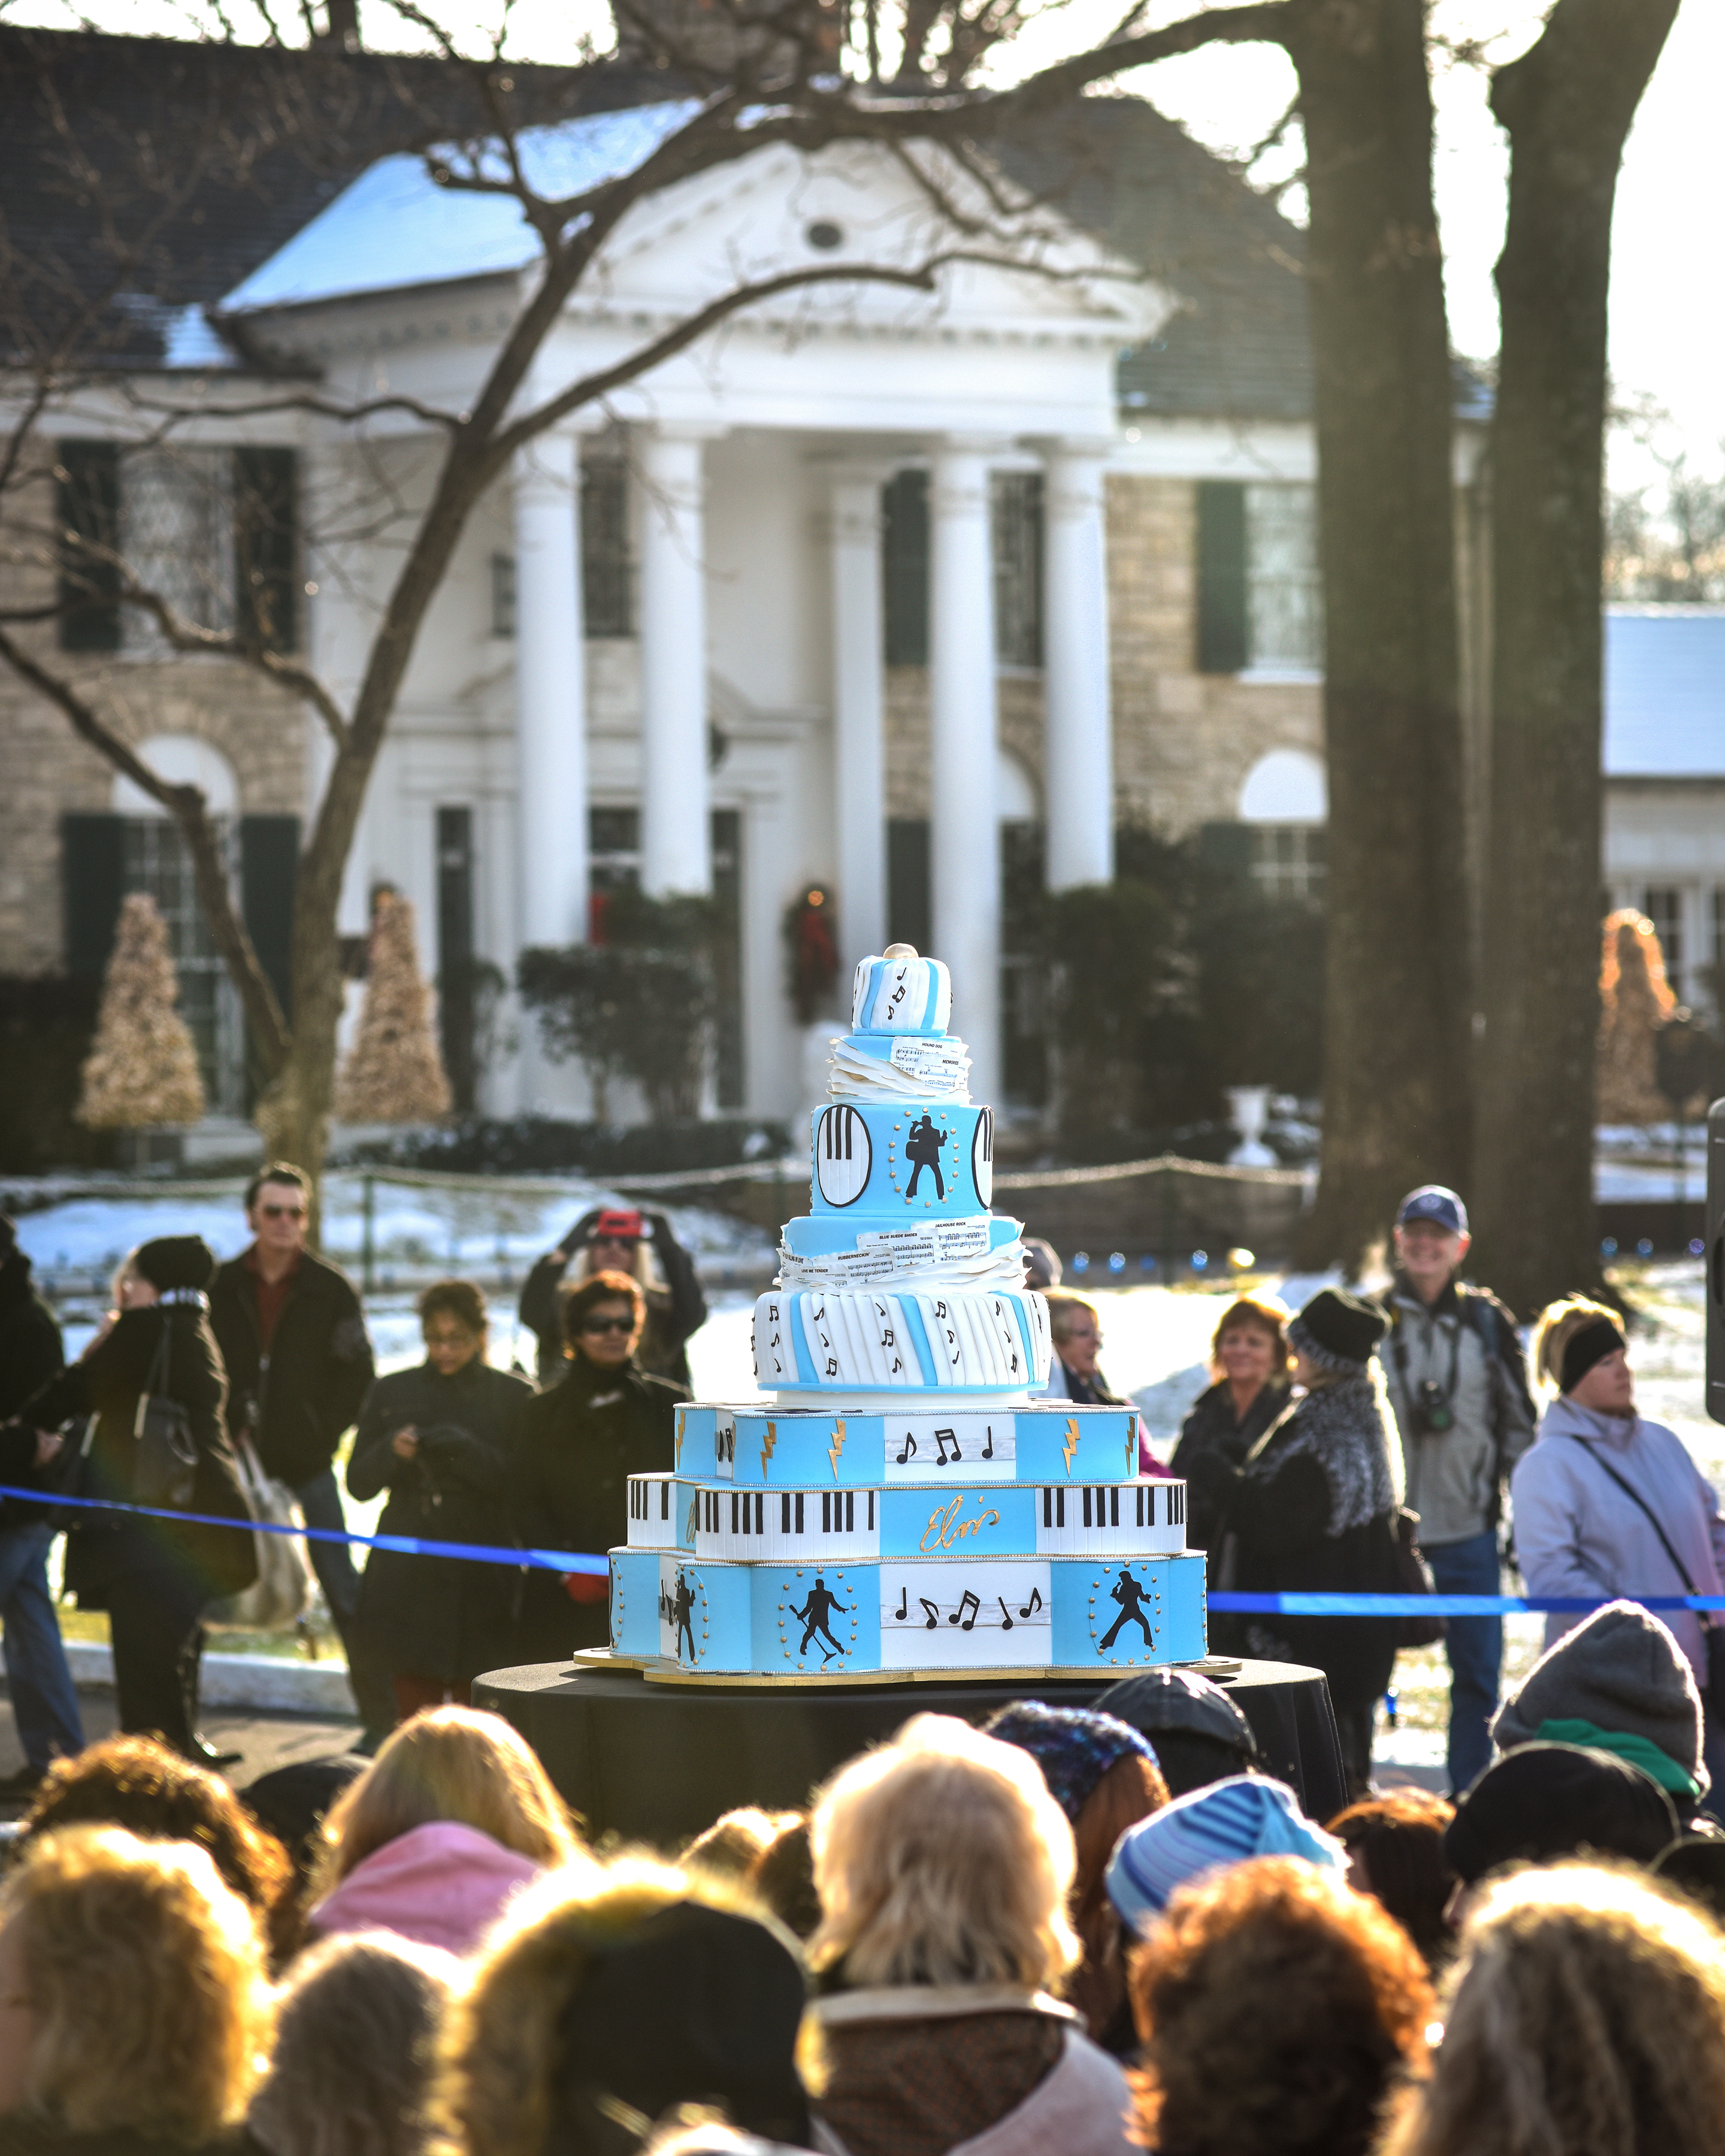 Graceland Celebrates Elvis Birthday With Special Events And Auction